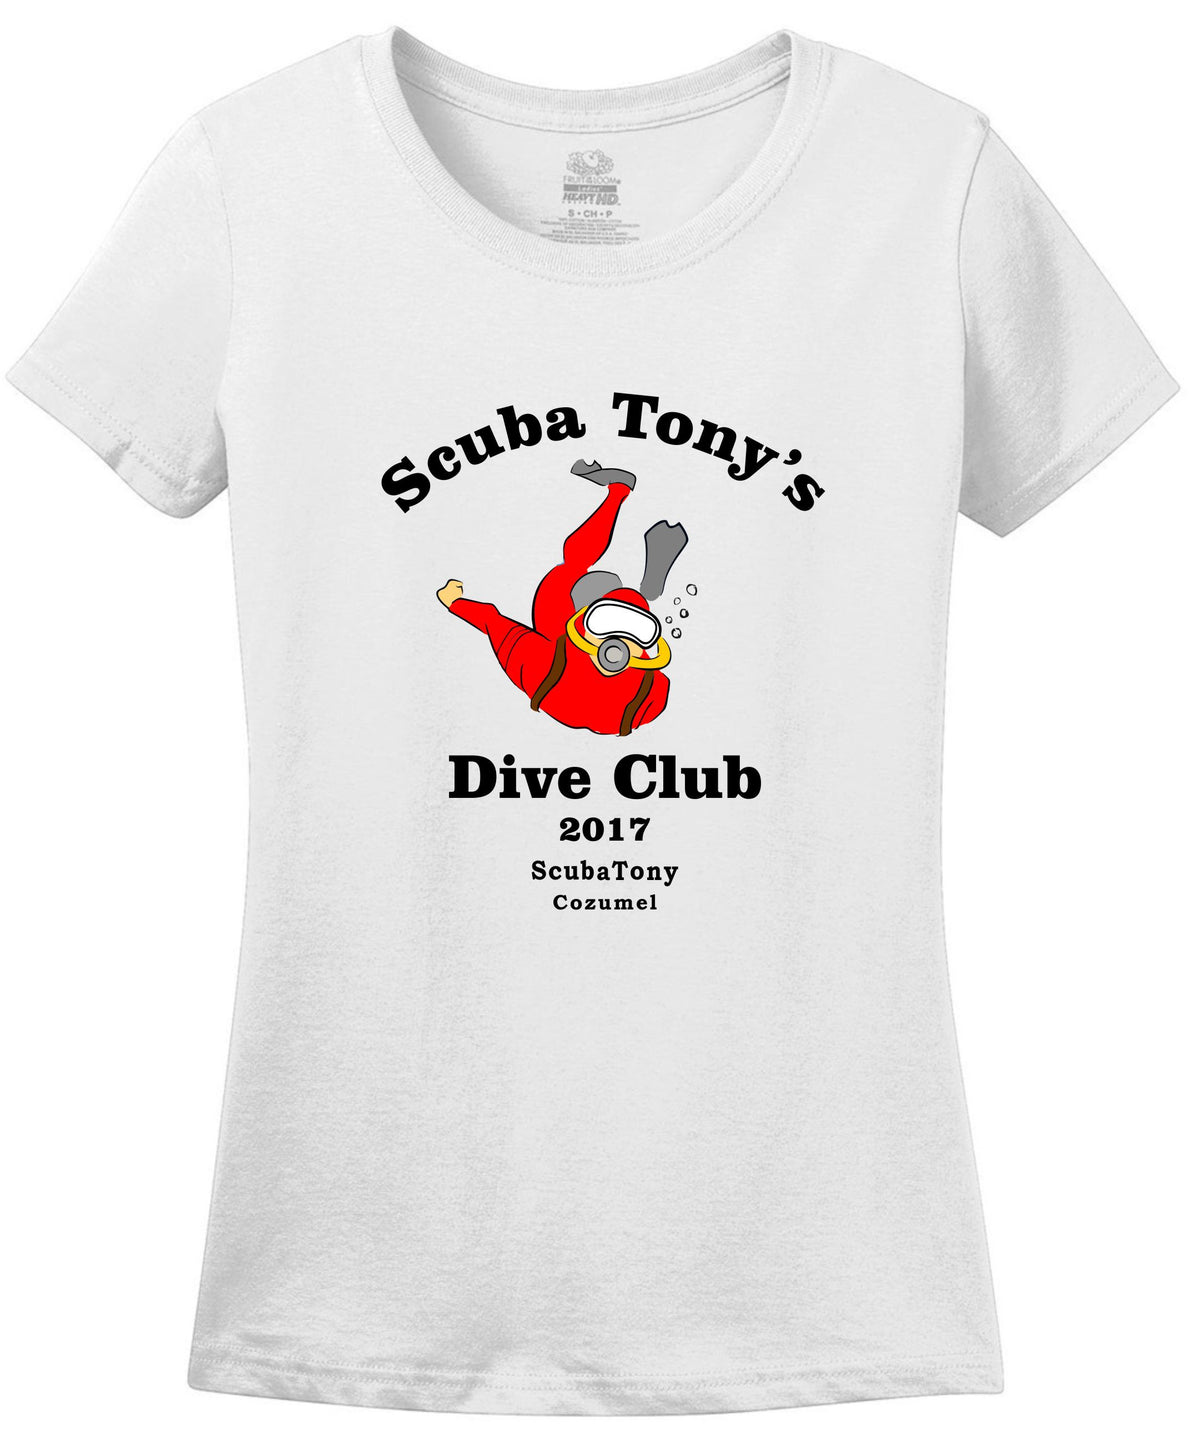 Women's ScubaTony Dive Club